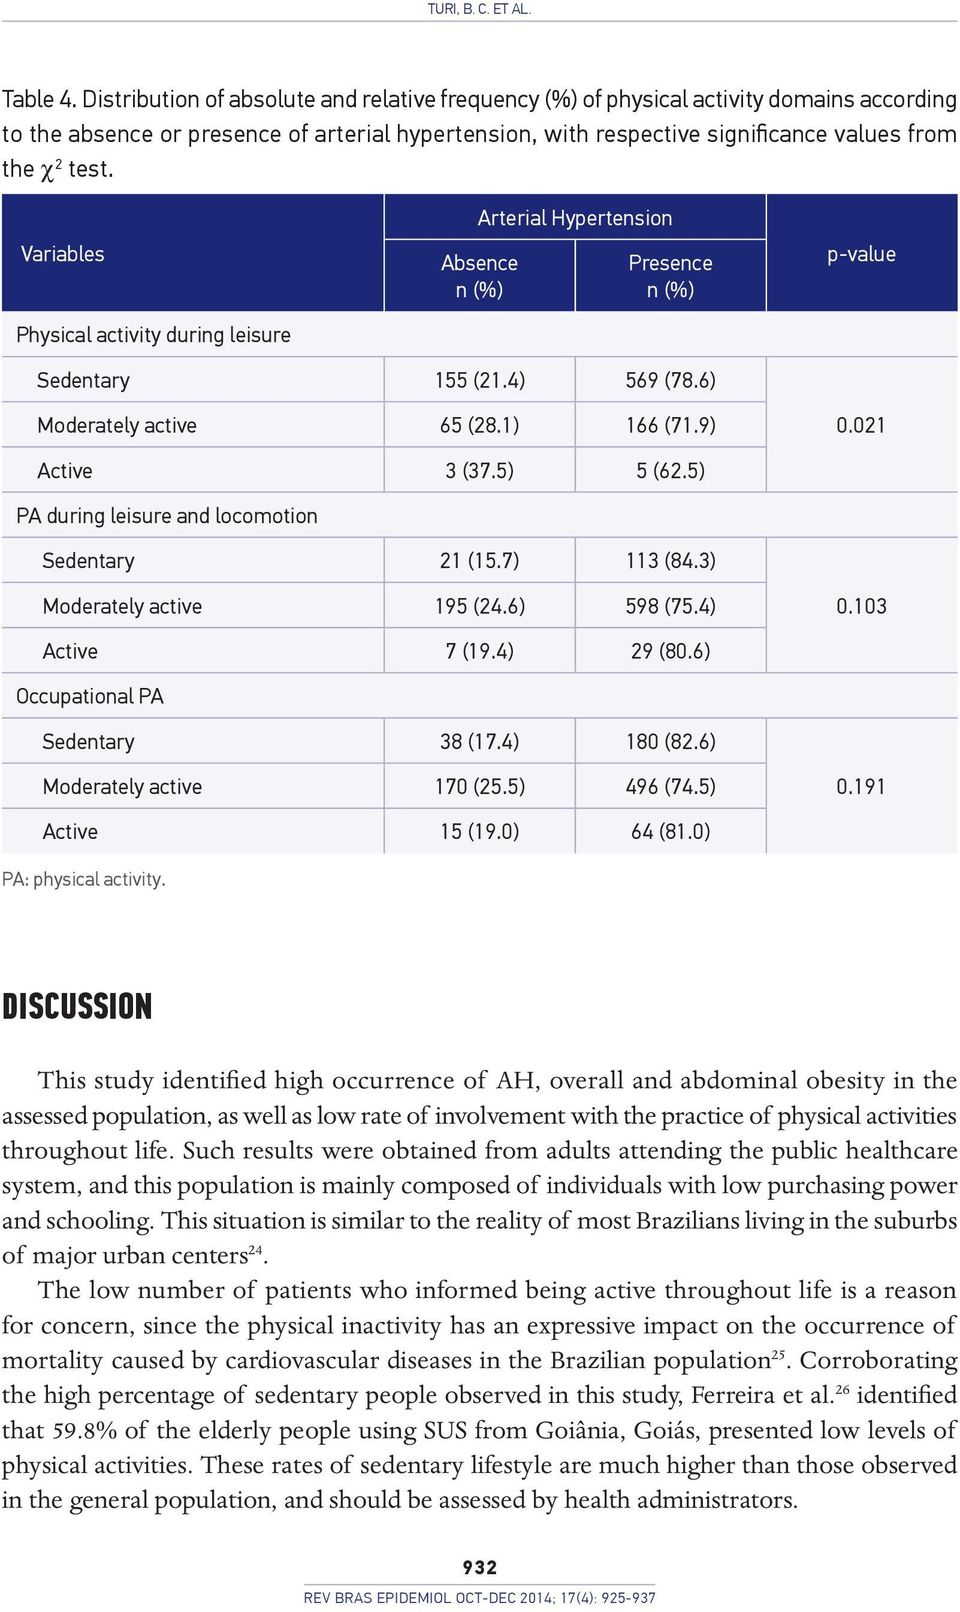 Variables Physical activity during leisure Arterial Hypertension Absence n (%) Presence n (%) p-value Sedentary 155 (21.4) 569 (78.6) Moderately active 65 (28.1) 166 (71.9) 0.021 Active 3 (37.